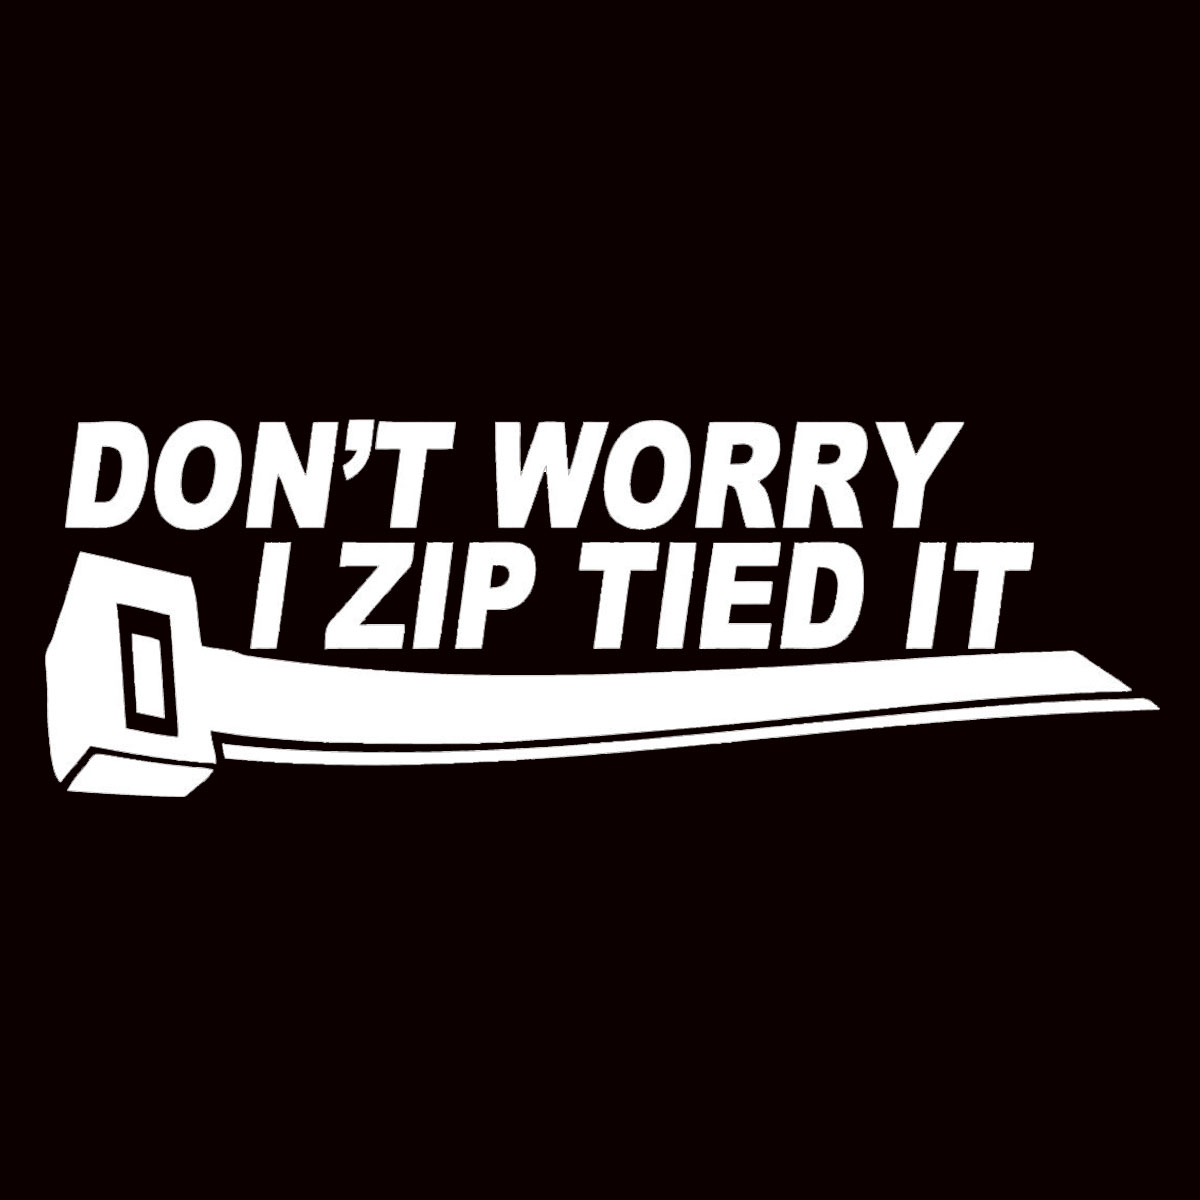 Funny Dont Worry I Zip Tied It Car Sticker Decal For Wrx JDM Illest Drift Stance